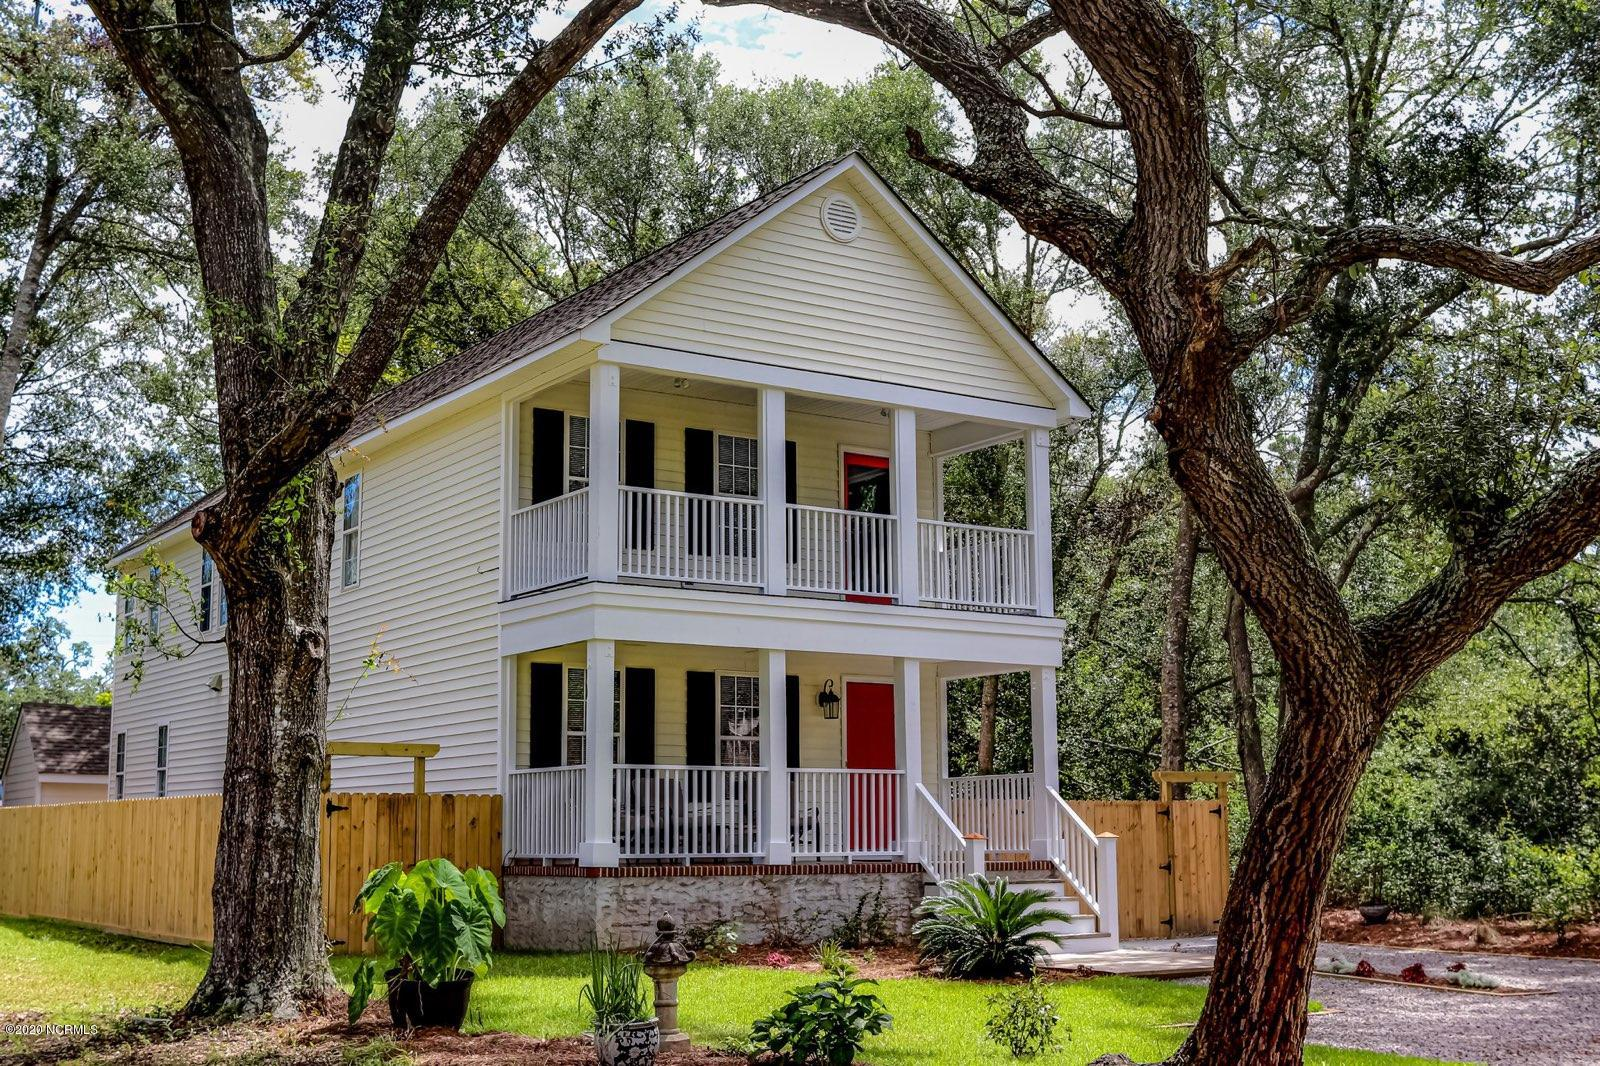 1106 Lord Street, Southport, North Carolina 28461, 4 Bedrooms Bedrooms, ,4 BathroomsBathrooms,Residential,For Sale,Lord,100233223